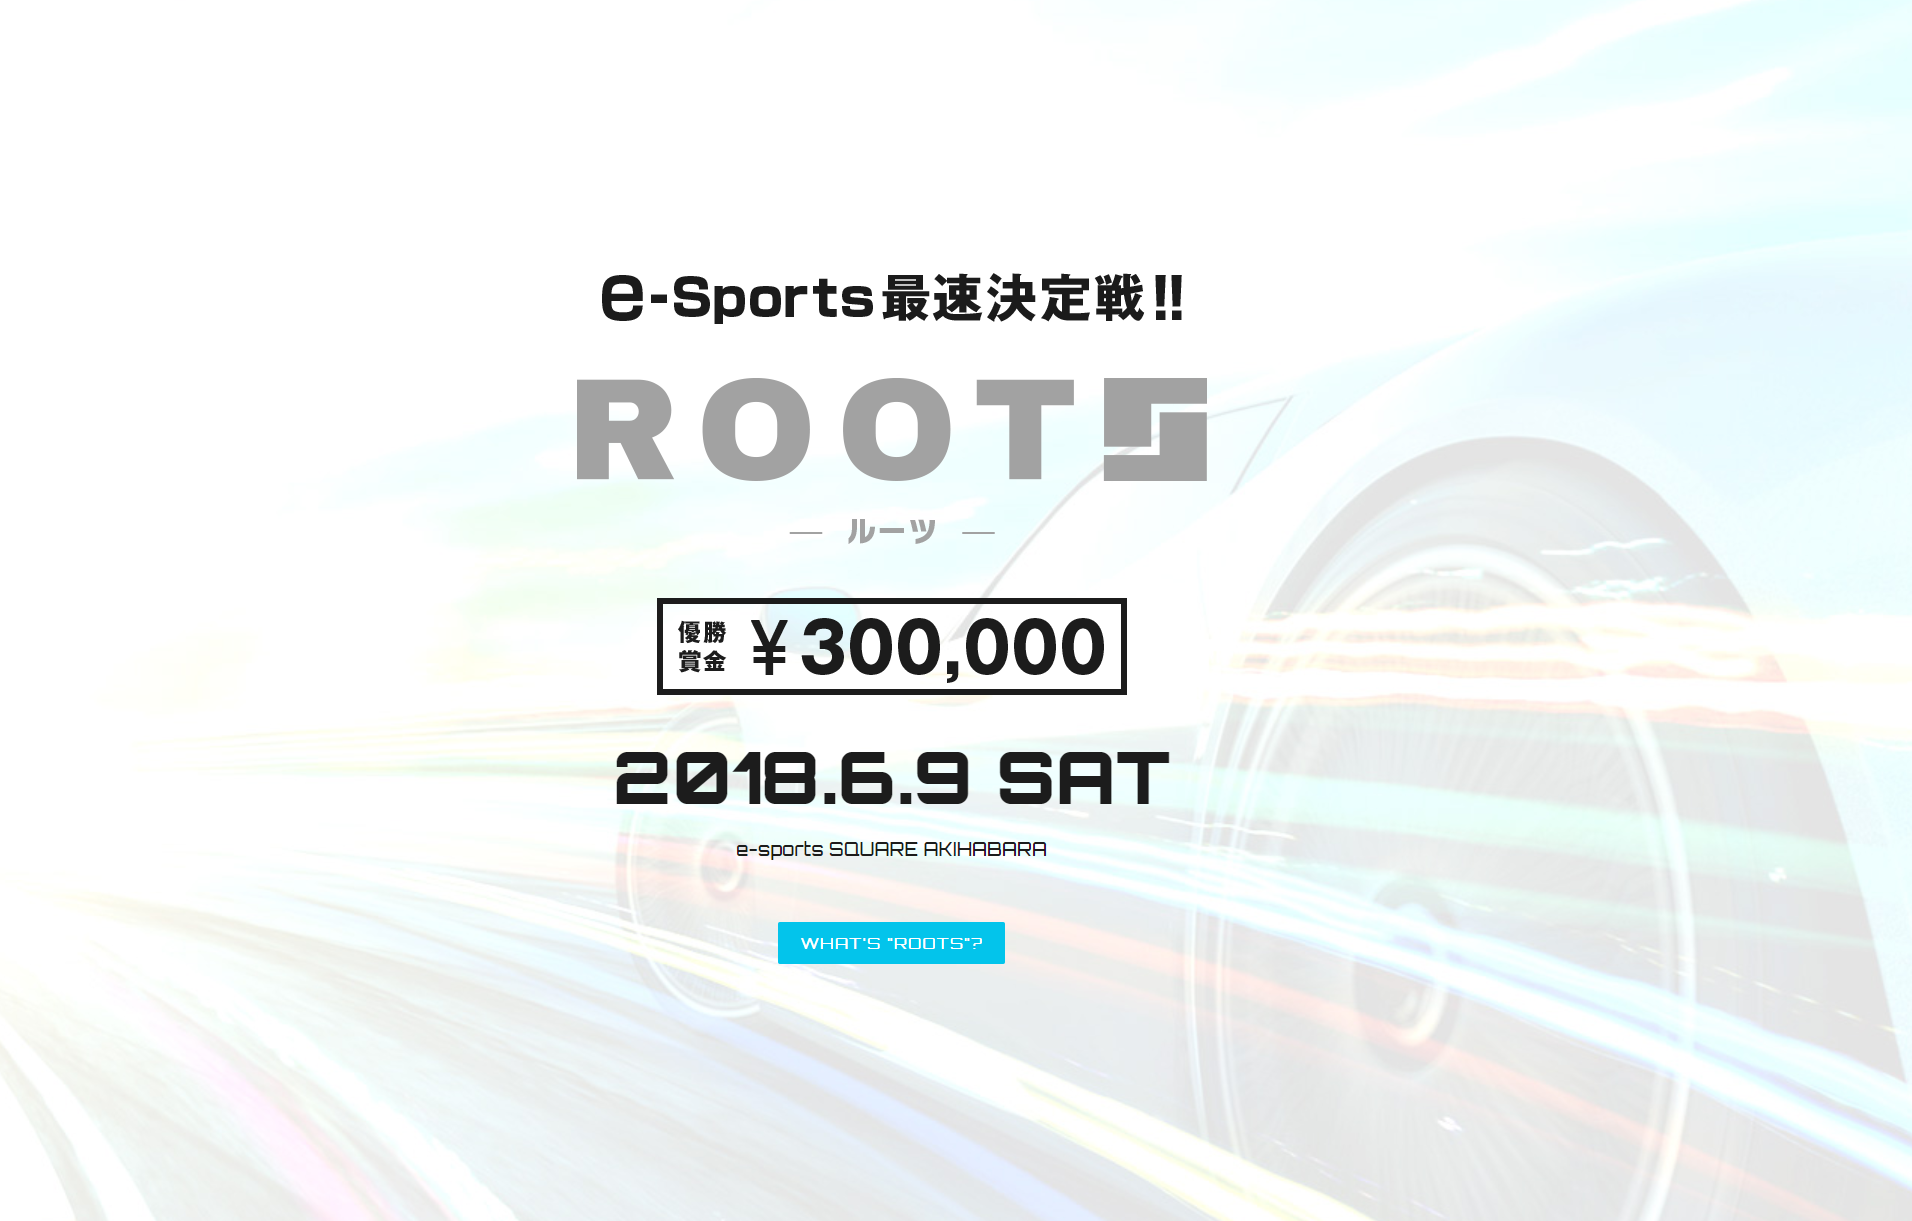 【2018.6.9 e-sports最速決戦!! Roots 】